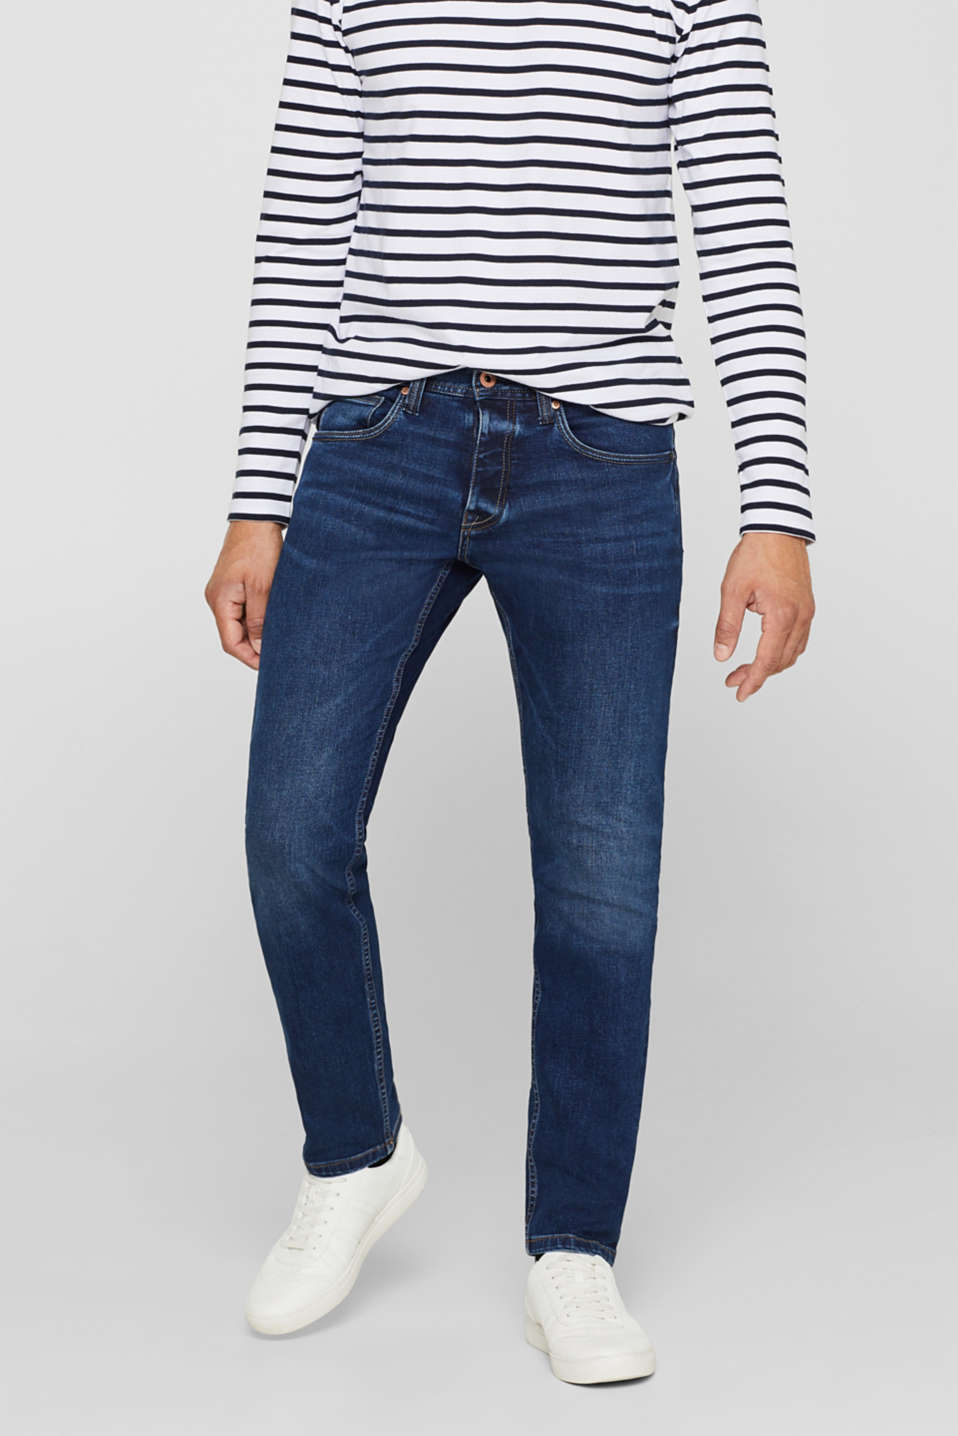 Esprit - Super stretch denim with a vintage garment wash